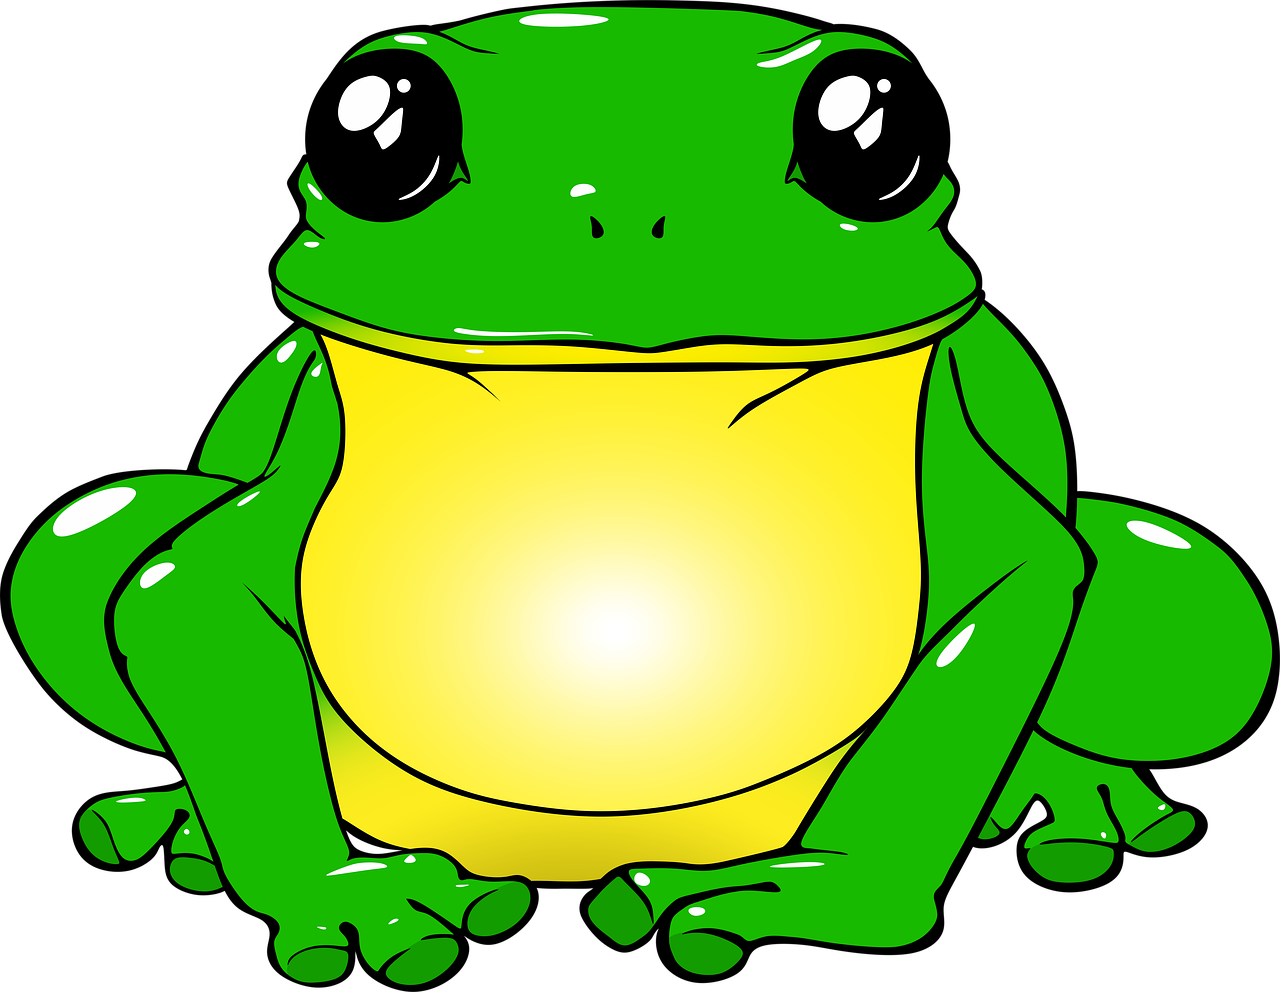 news/images/frog-2495715_1280.png